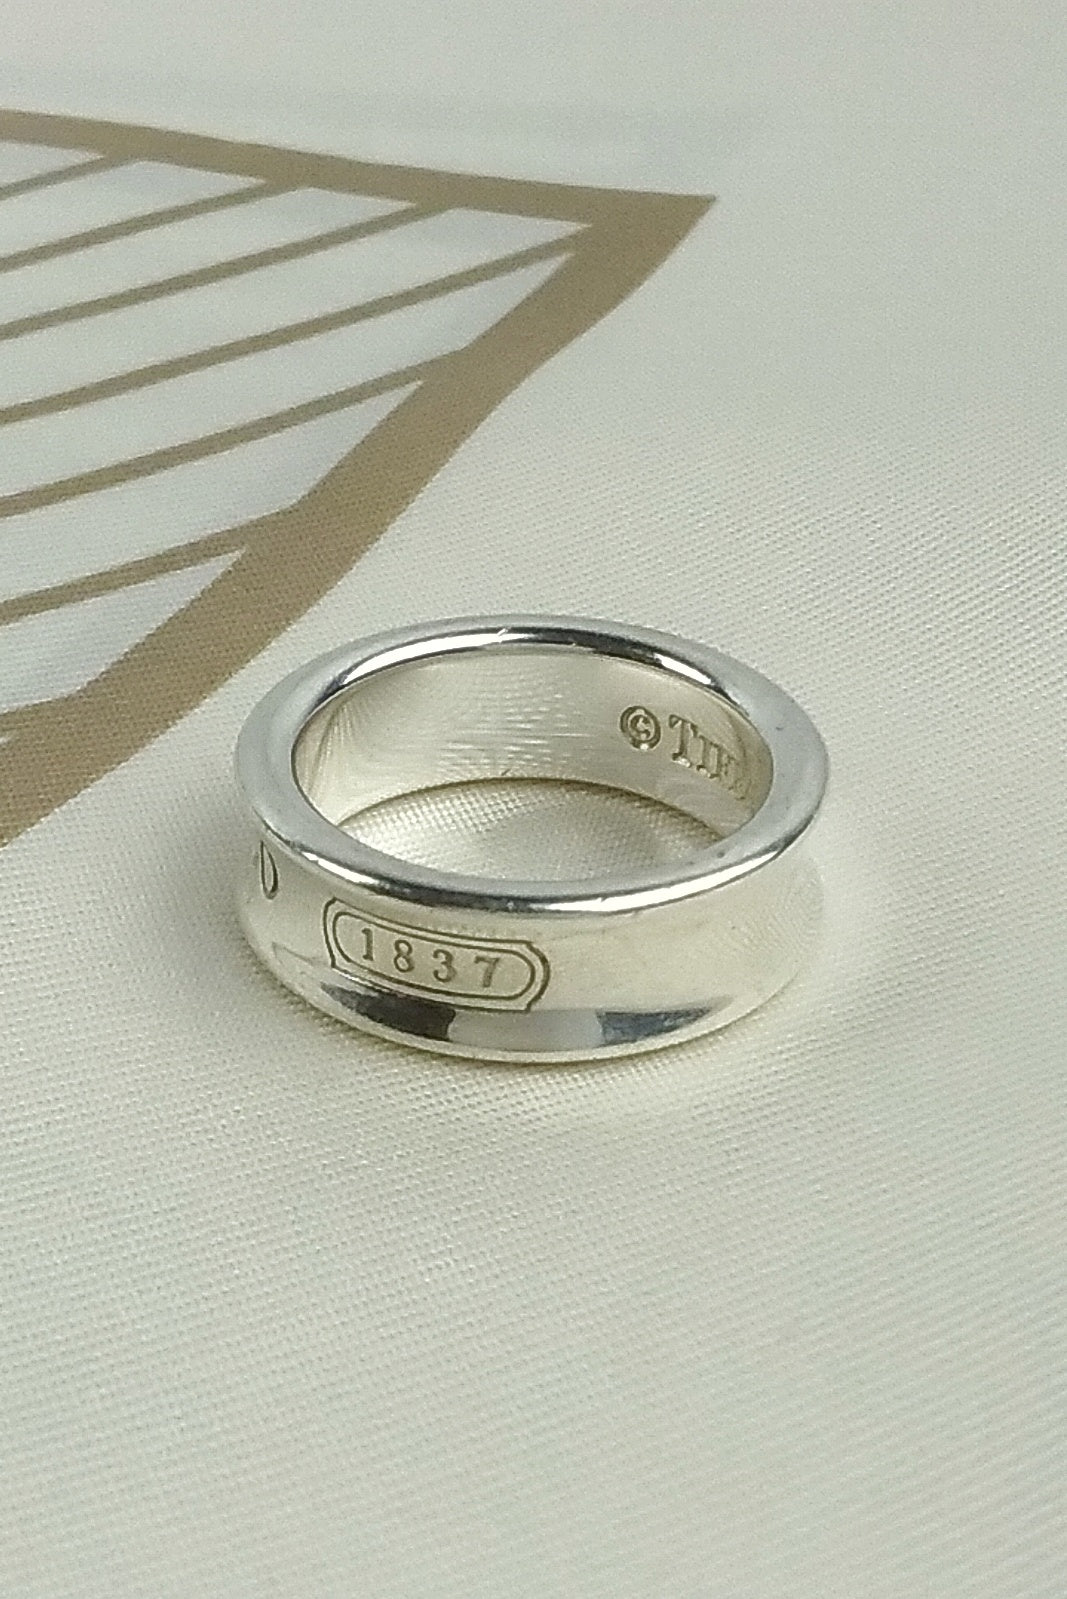 1837 TM Sterling Silver Ring